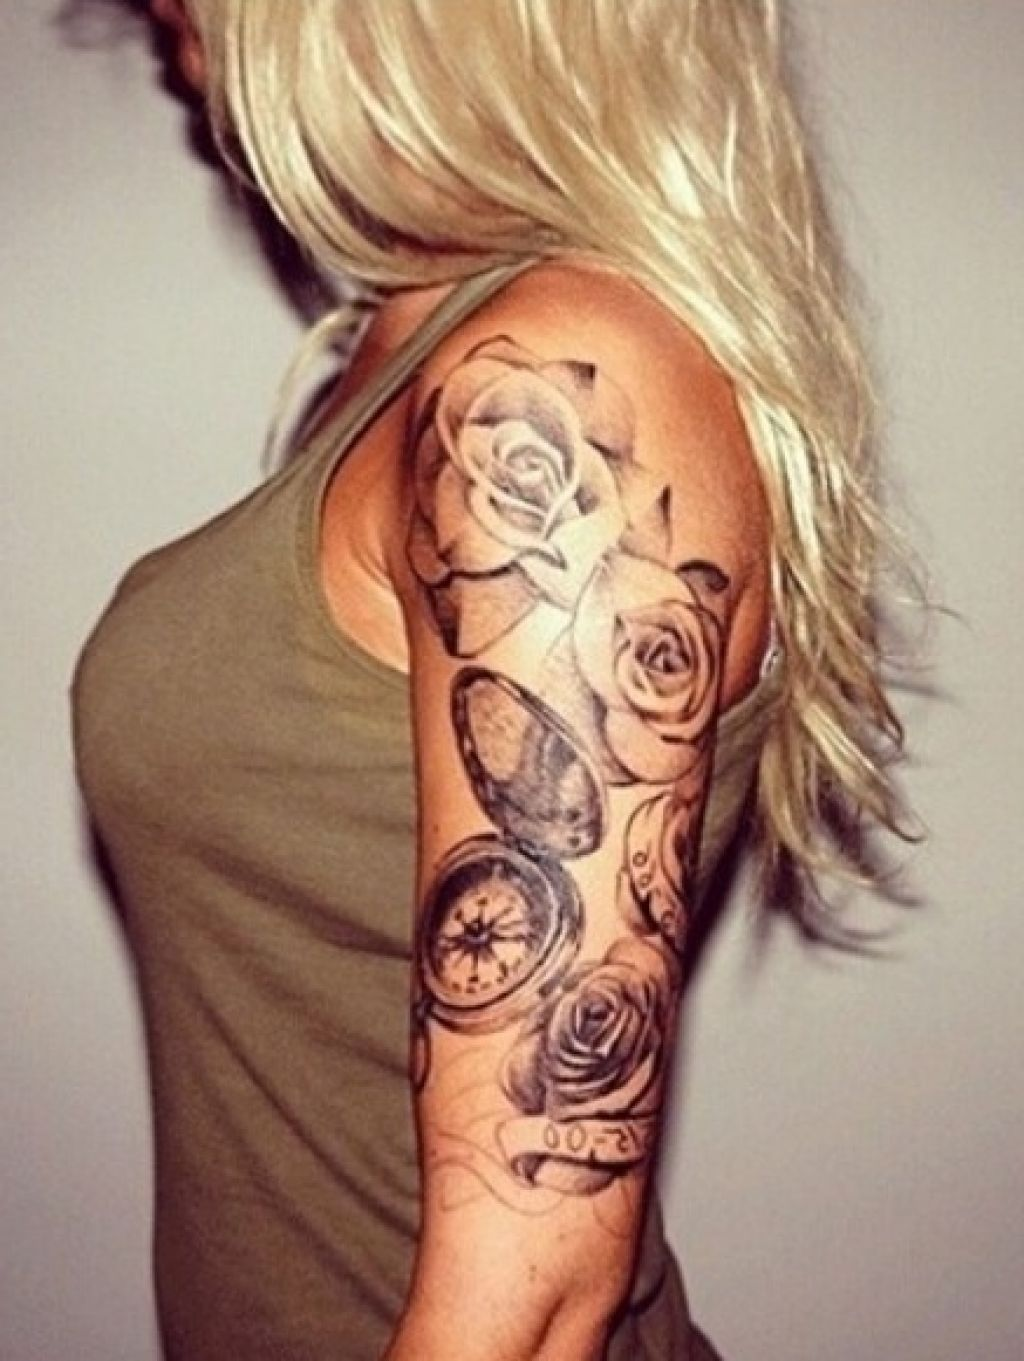 Women Half Sleeve Tattoo Designs Girls With Sleeve Tattoos Half Arm Sleeve Tattoo Rose Tattoo Sleeve